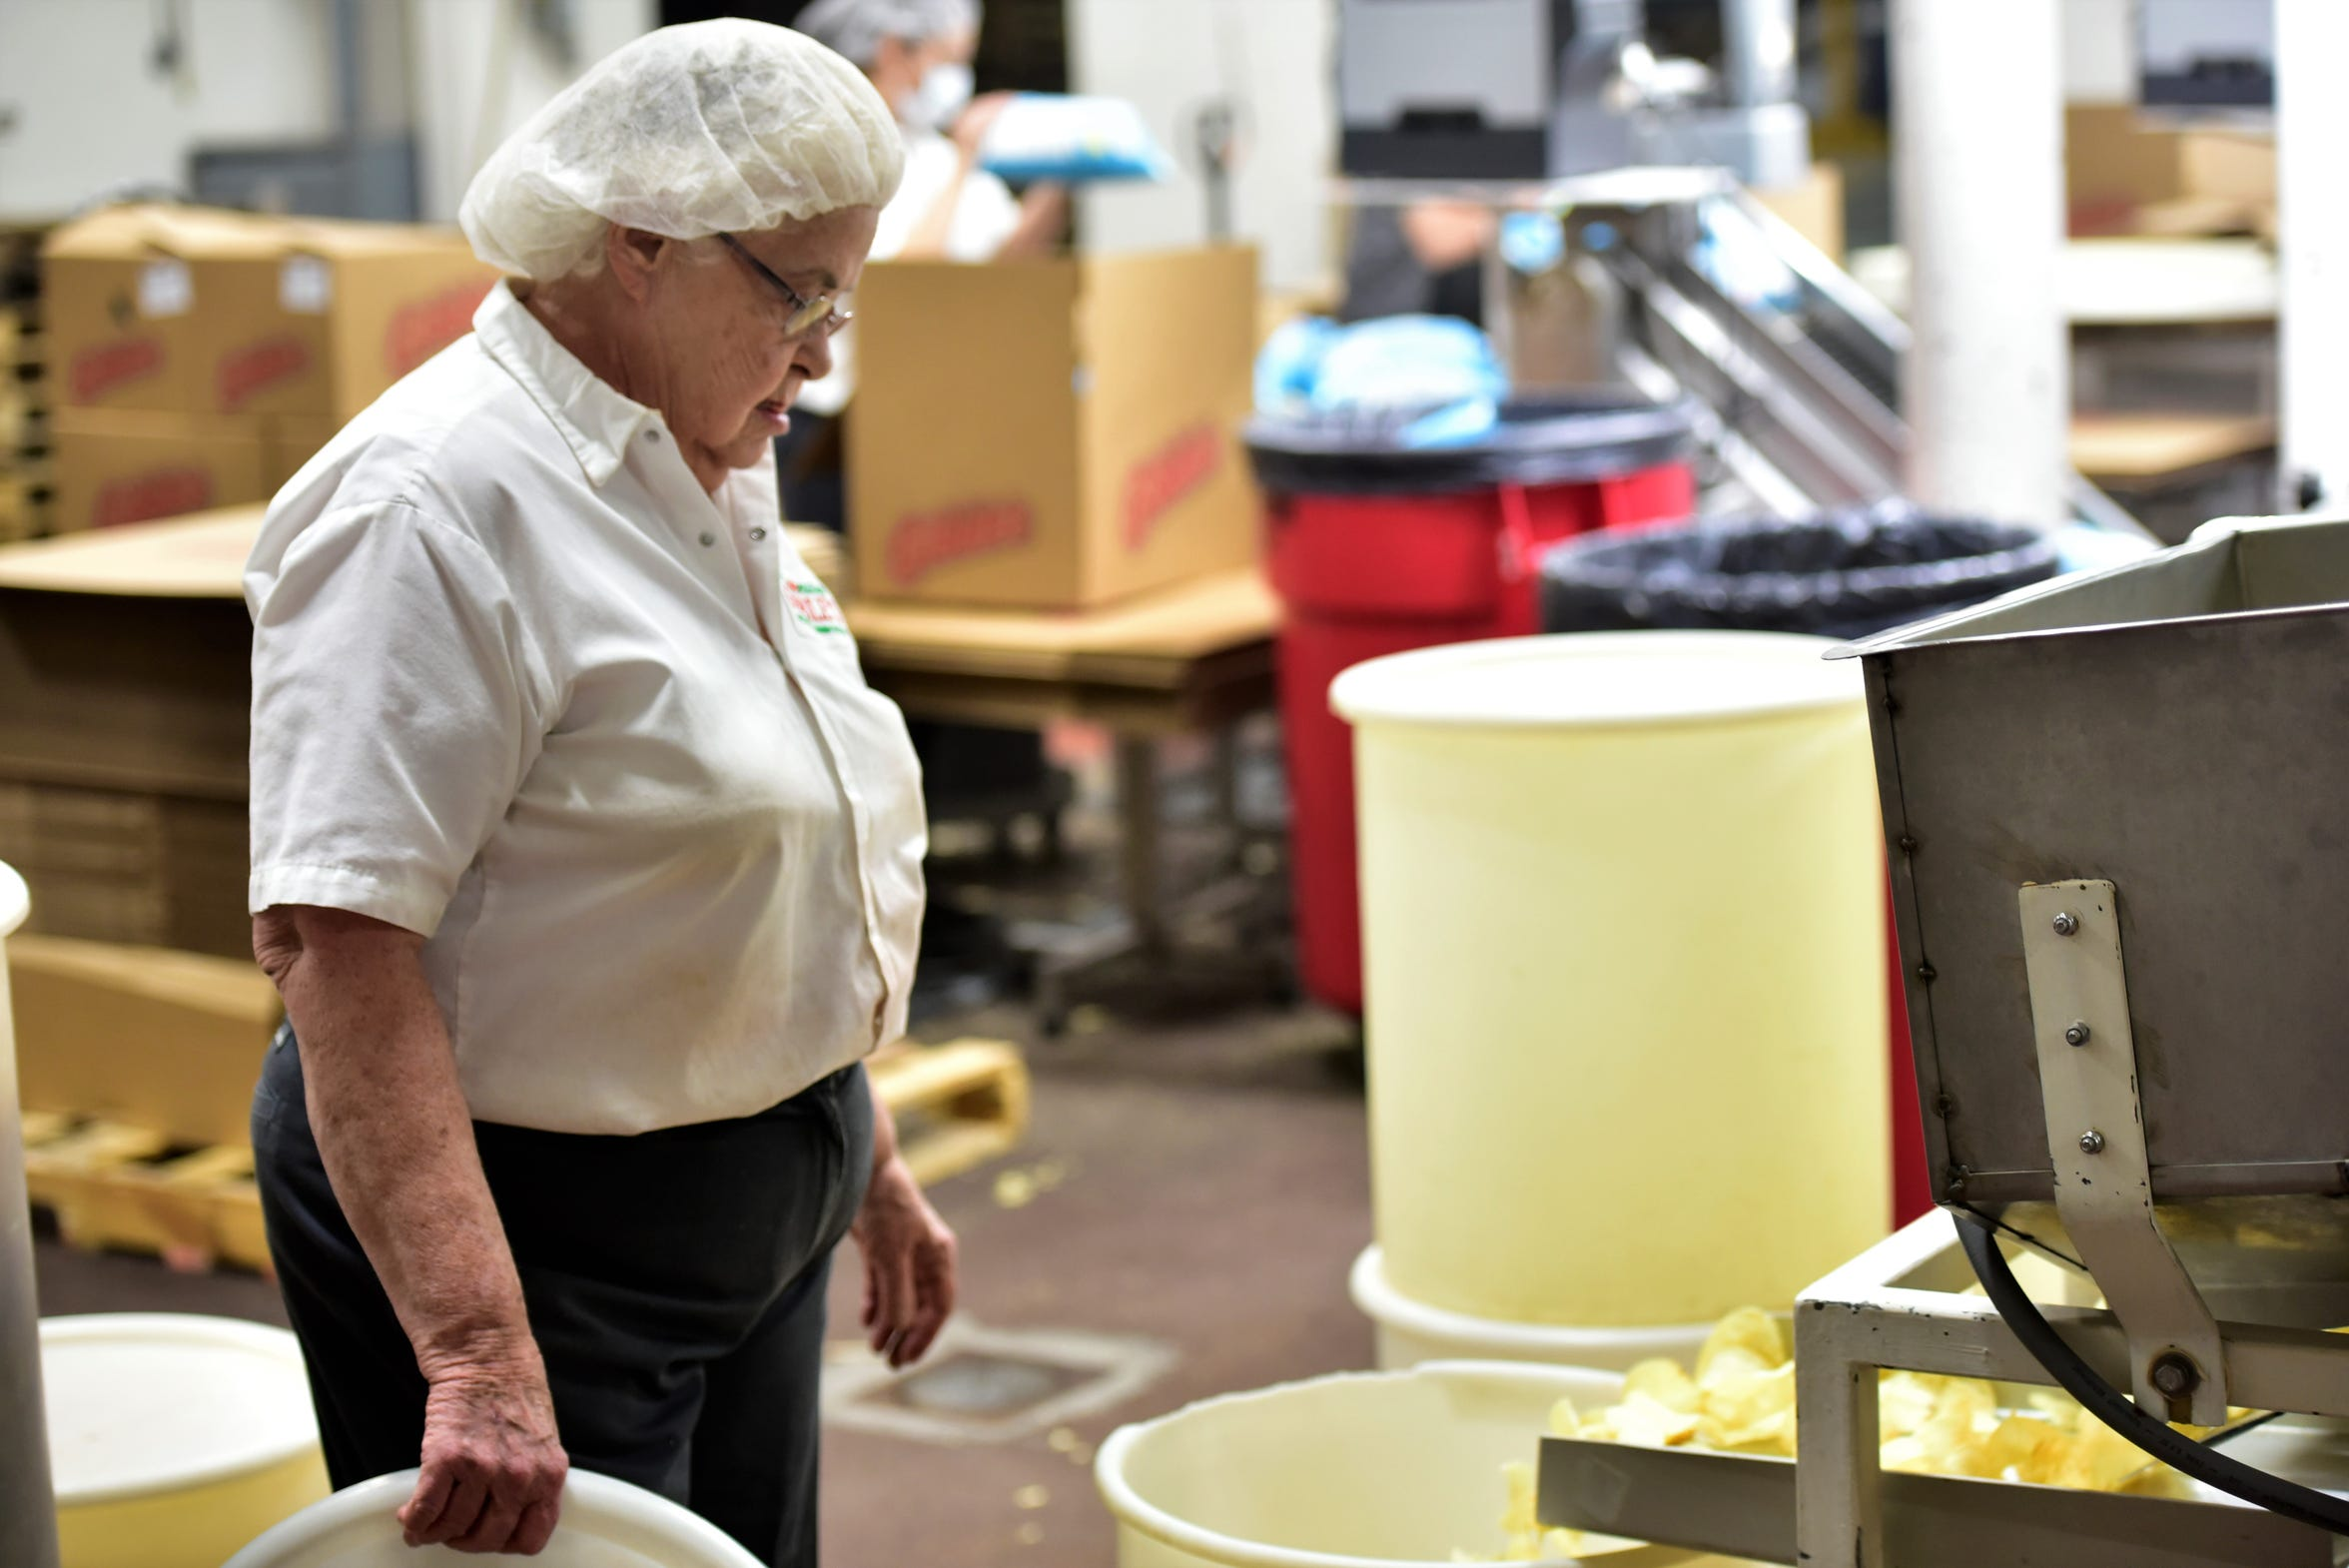 Helen Thomas works at the overflow station as potato chips are made at the Gibble's production facility, 6647 Molly Pitcher Highway, Chambersburg, on March 20, 2019. Thomas, 80, has worked at Gibble's for 41 years.